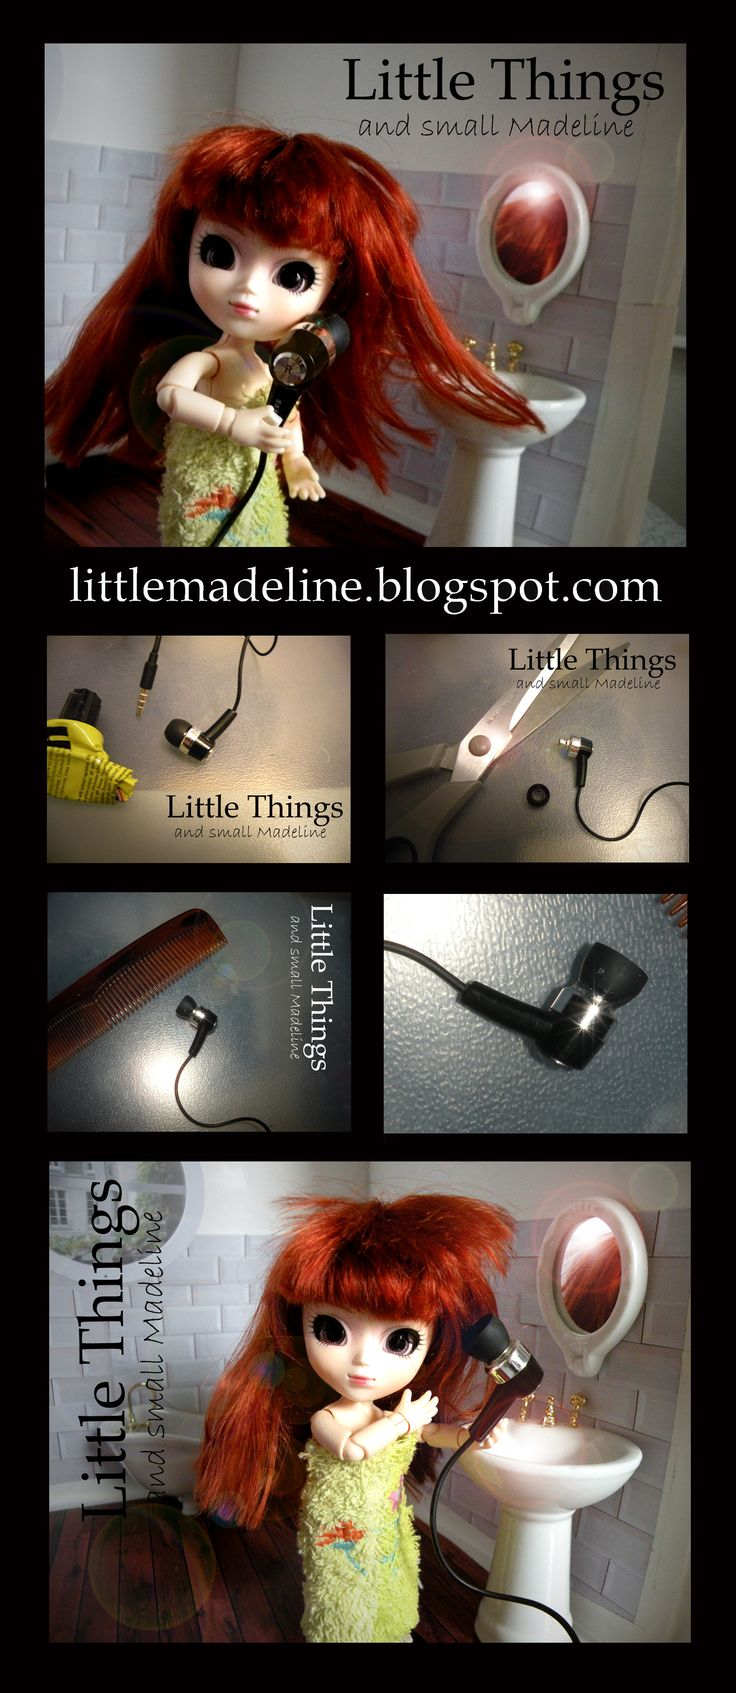 hair dryer for little pullip - miniatura 1:12